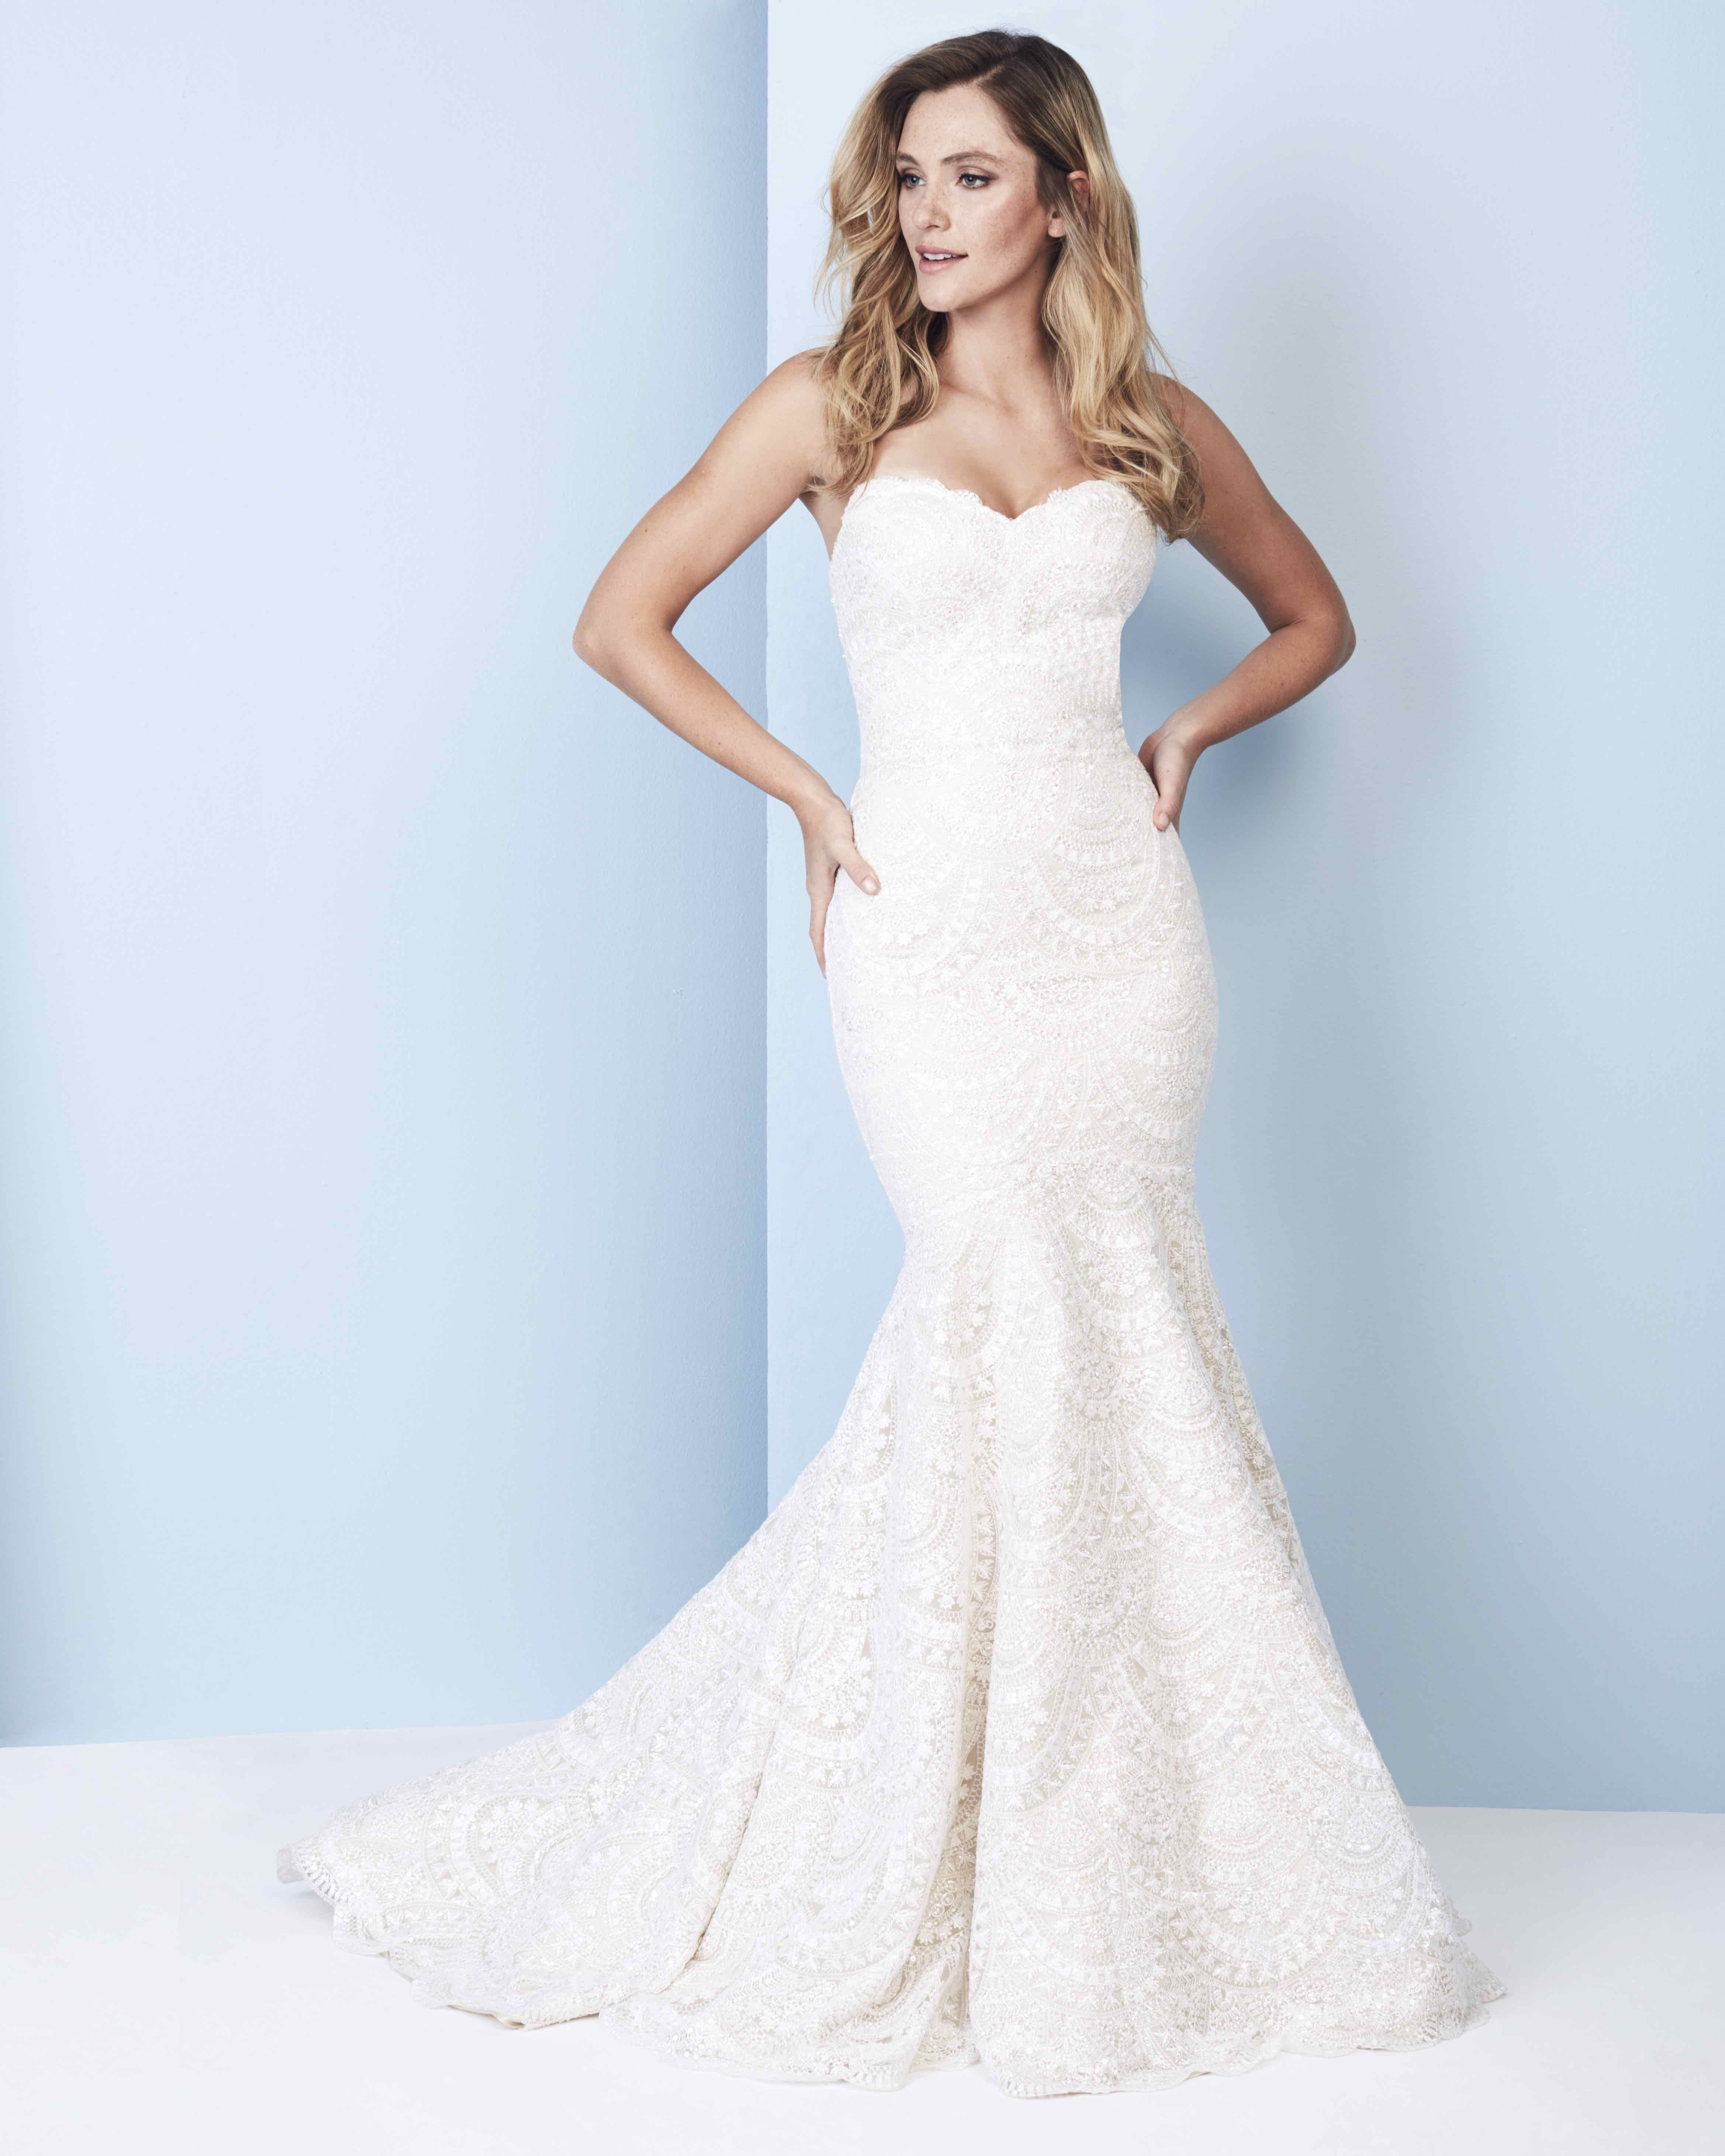 Zurie Blue Willow Bride By Anne Barge Fall 2018 Wedding Dress